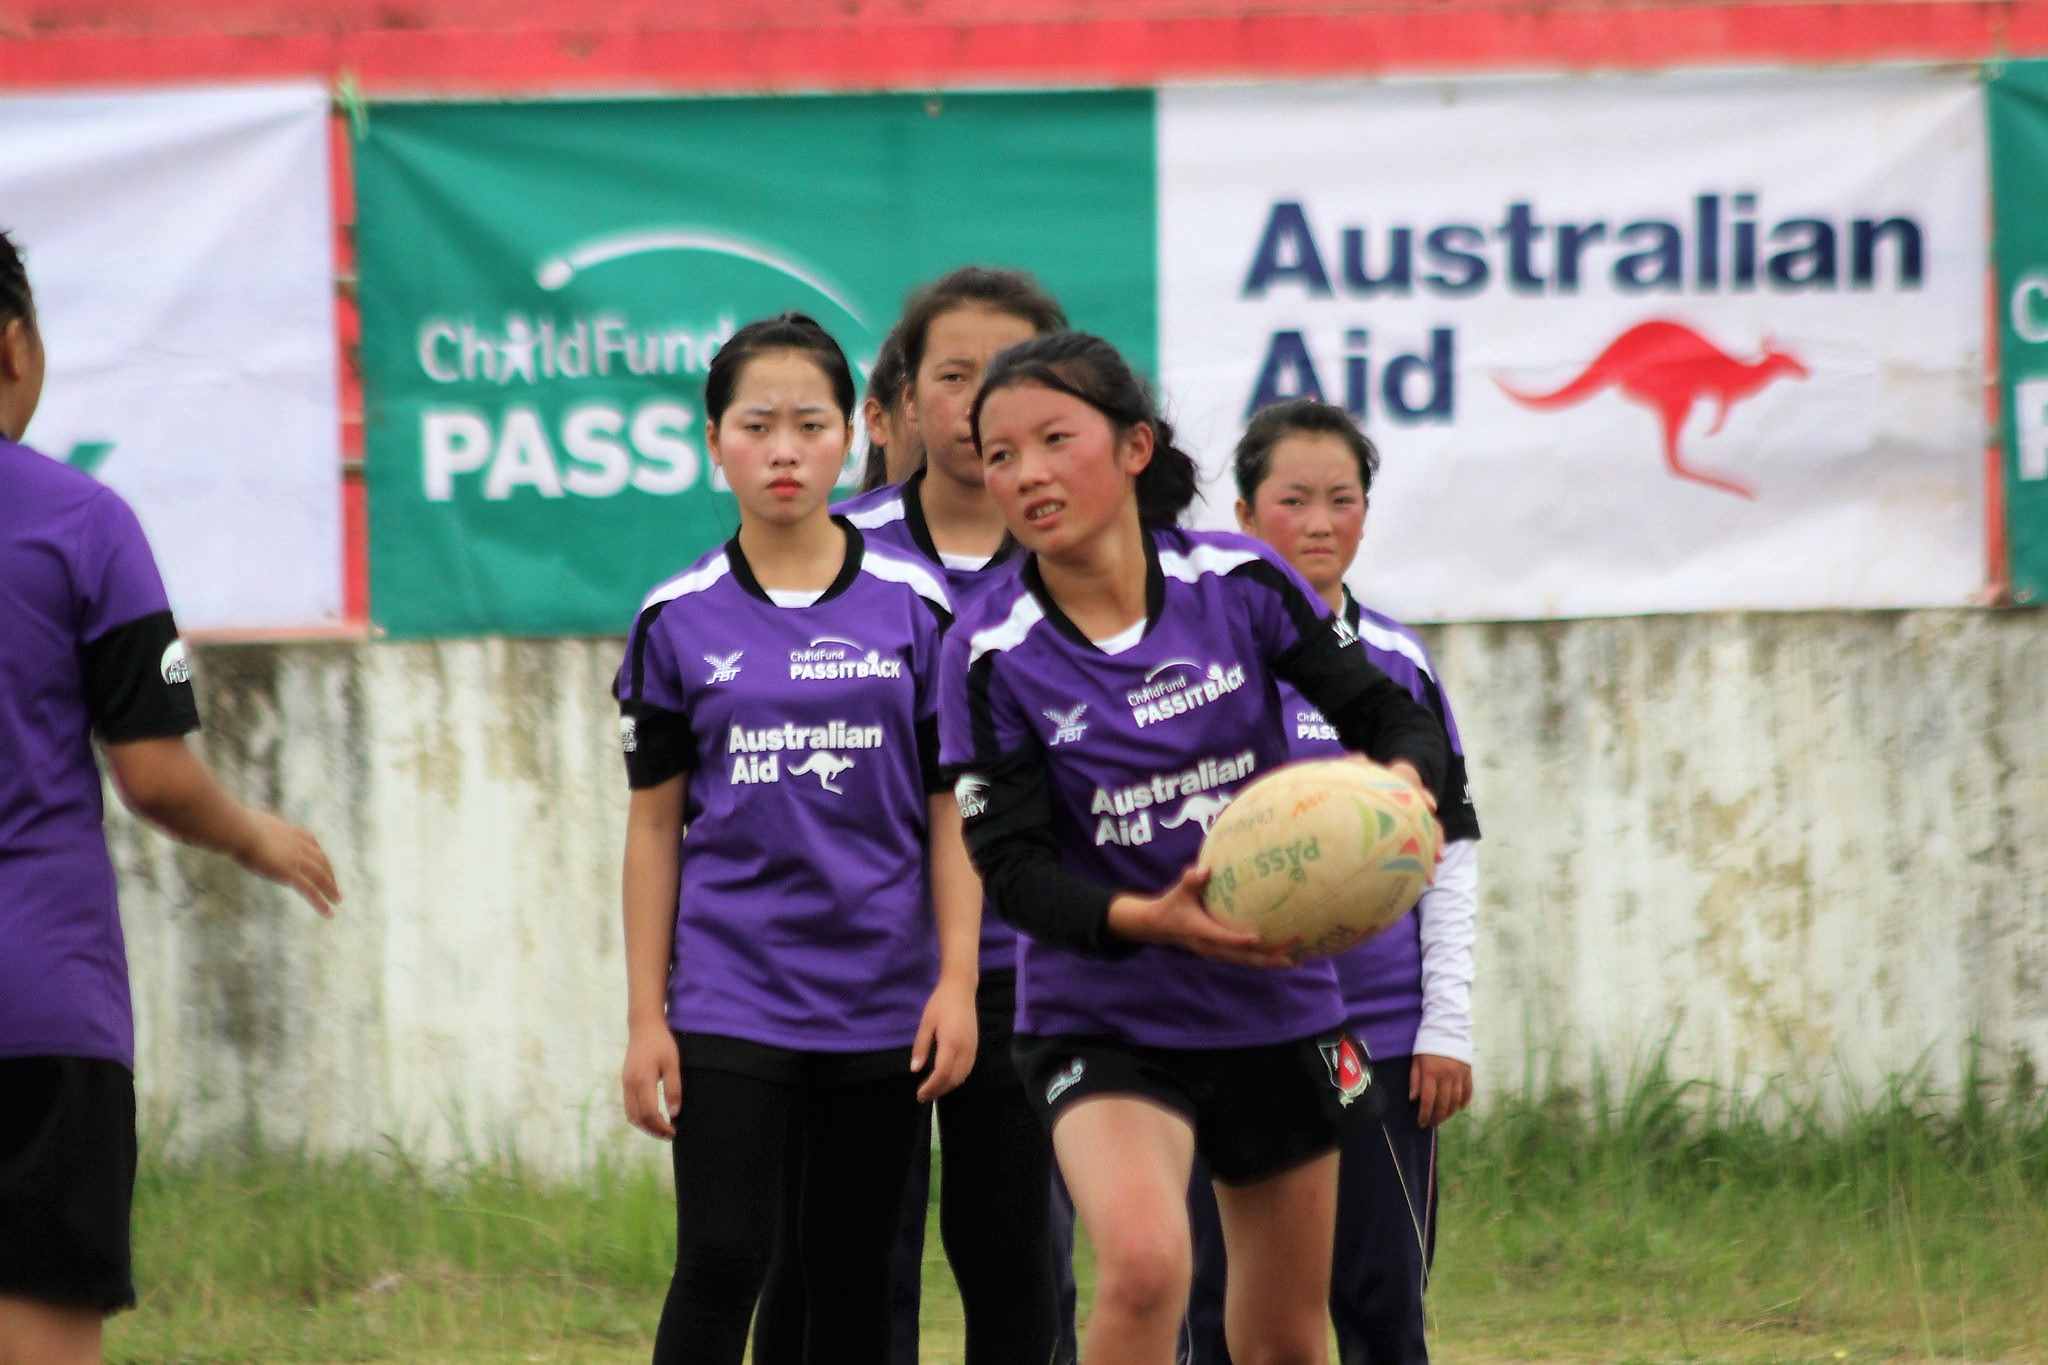 Lar runs with rugby ball while her team mates watch